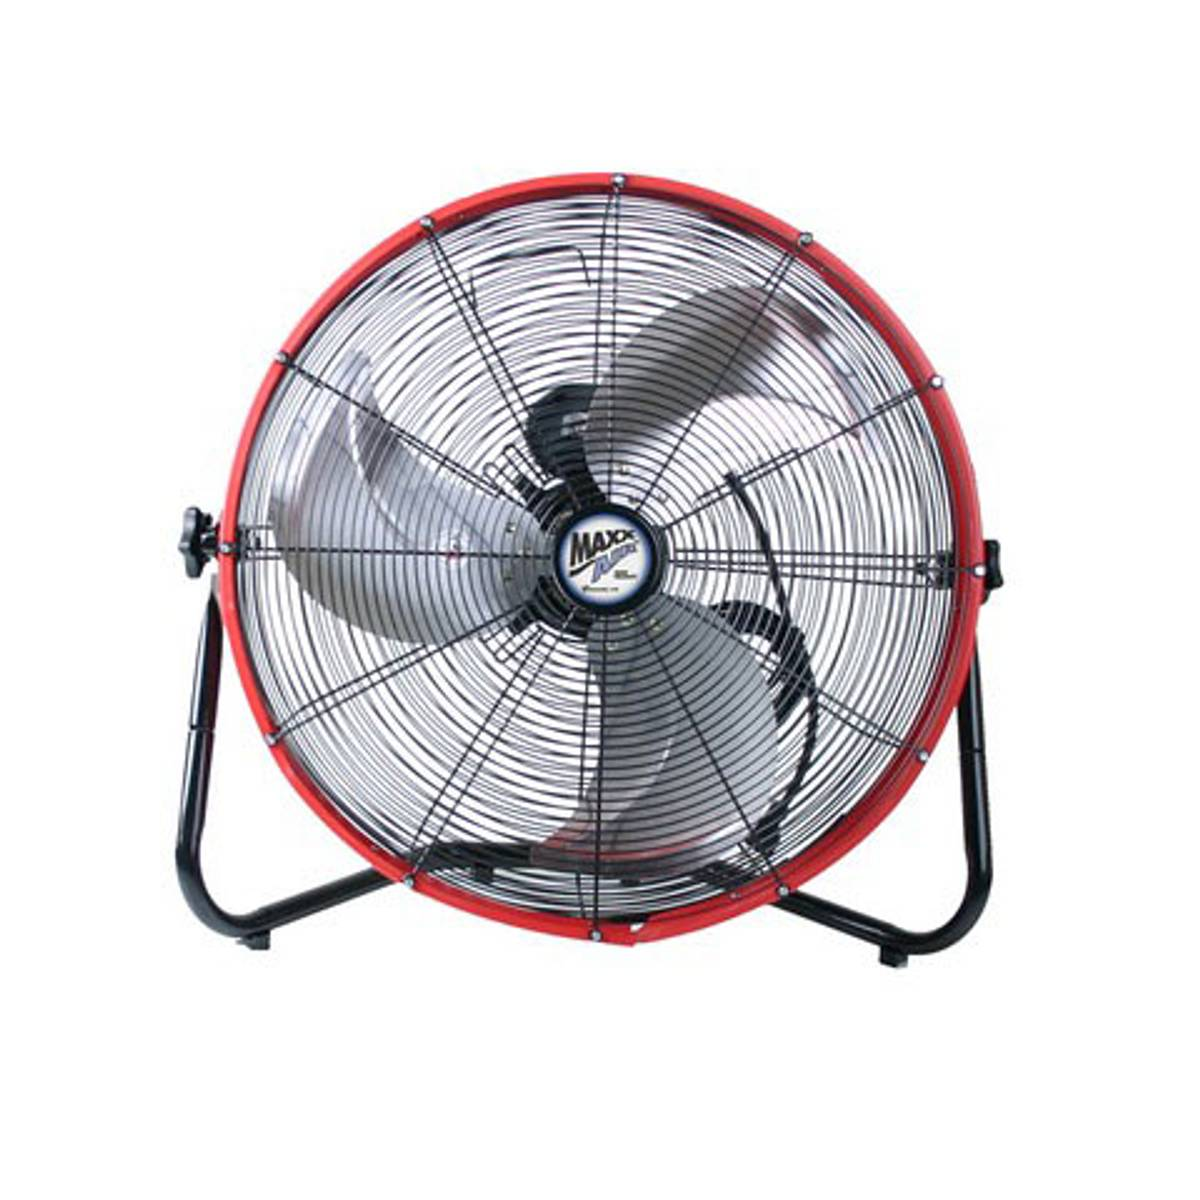 Shop Barn Fans | Blain's Farm & Fleet